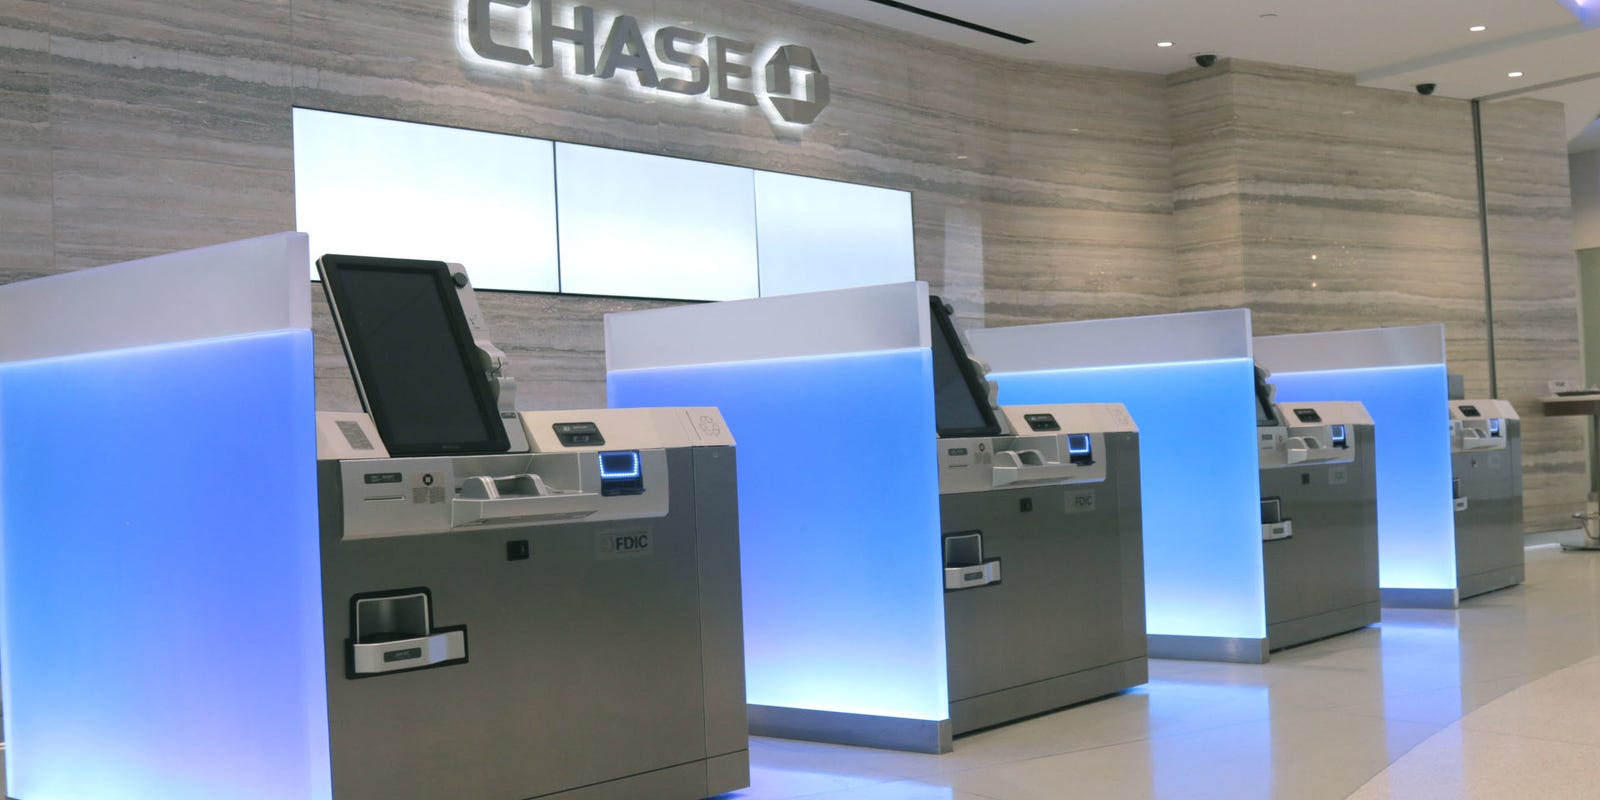 Money: Labor Day marks 50th birthday for cash machines in U S